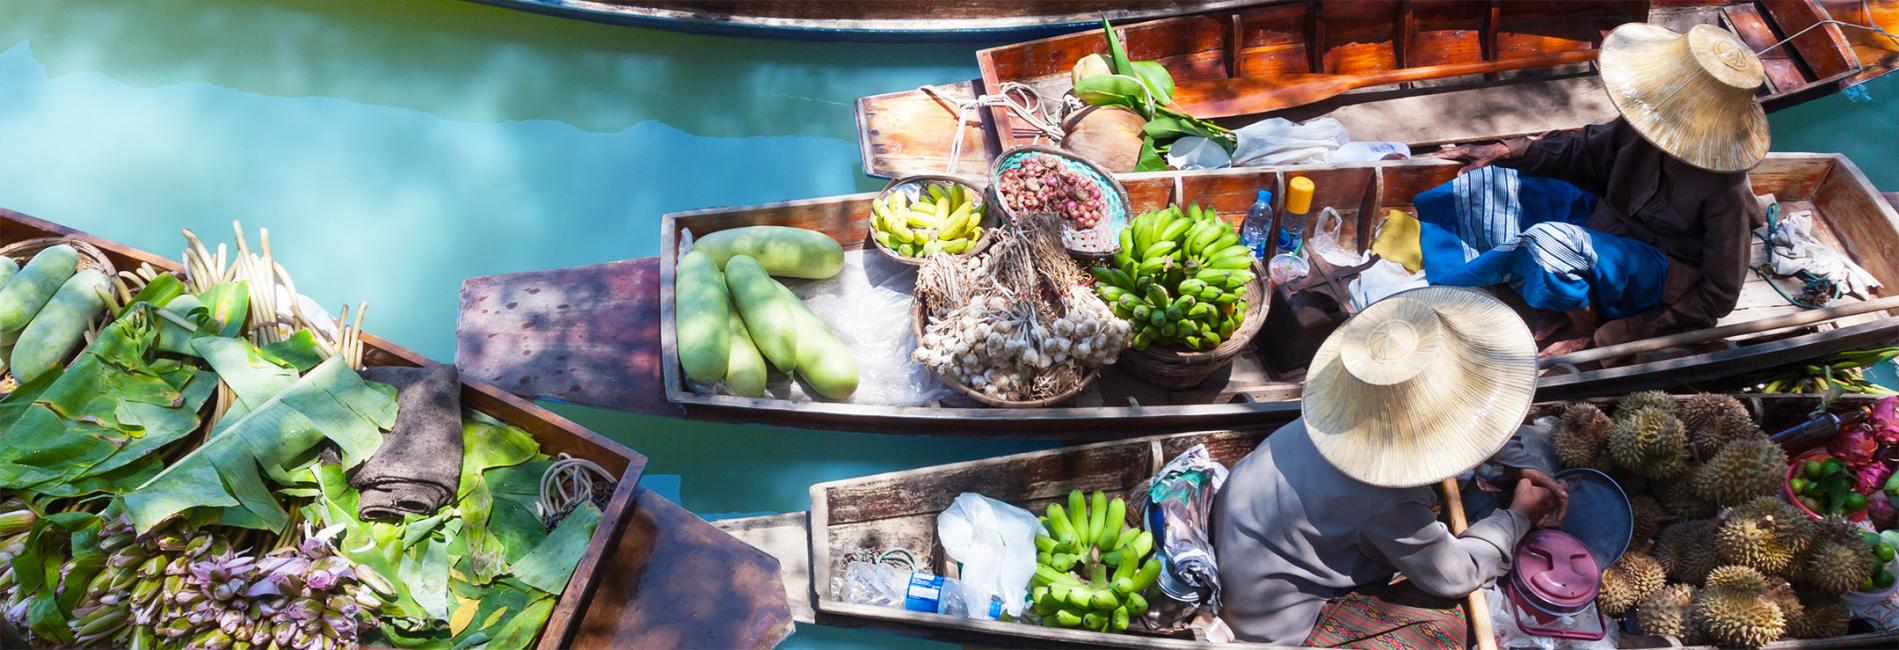 Touring Bangkok's Floating Market Train & Railway Markets